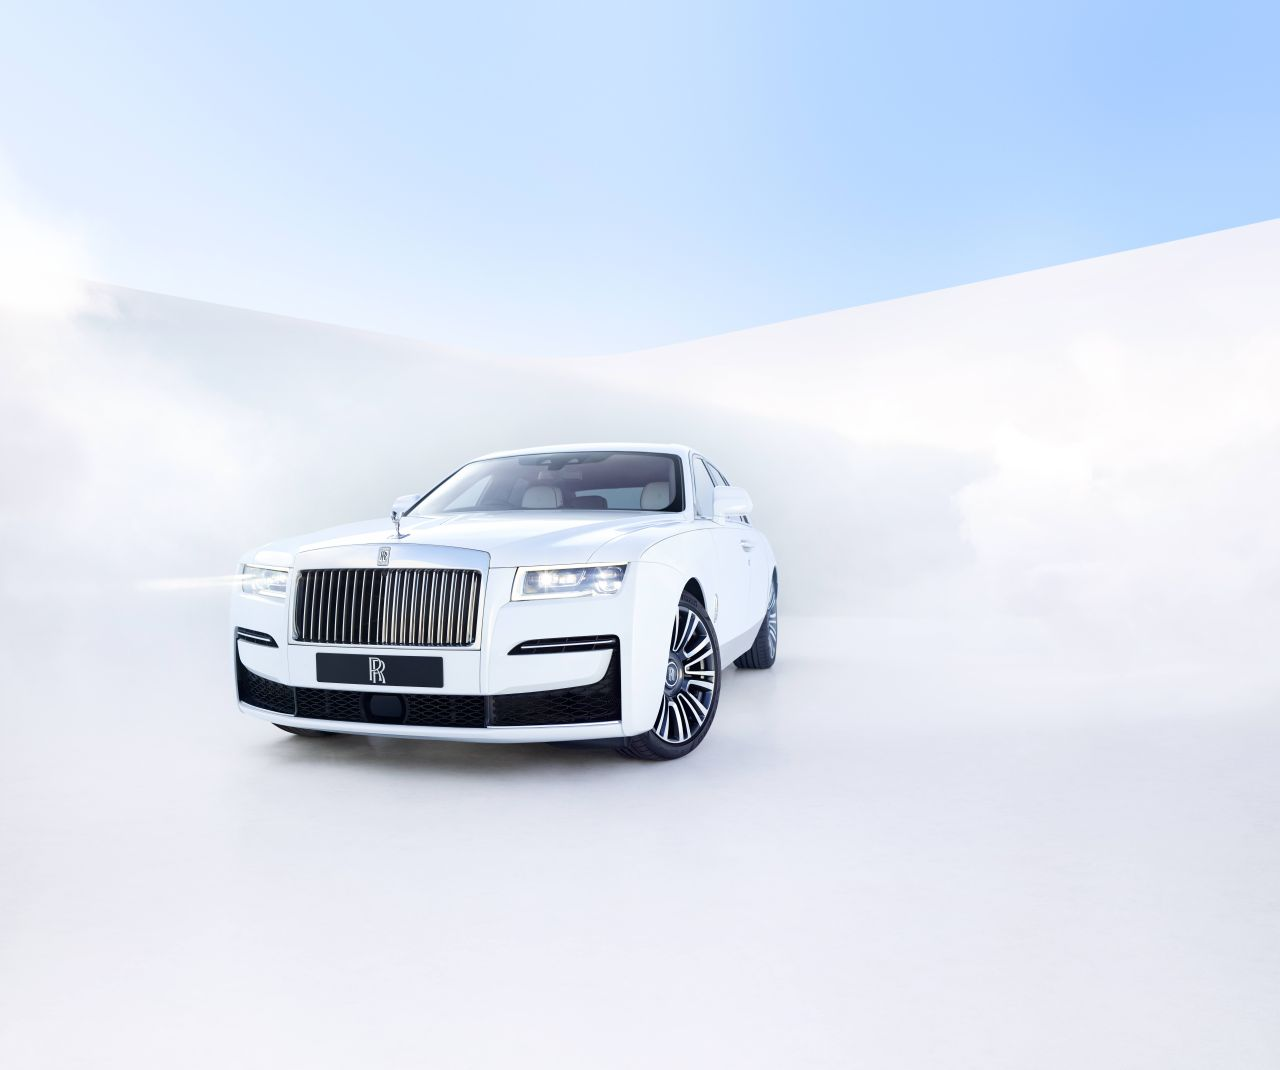 """The New Rolls-Royce Ghost Appears With A """"Post Opulent""""Embodiment"""